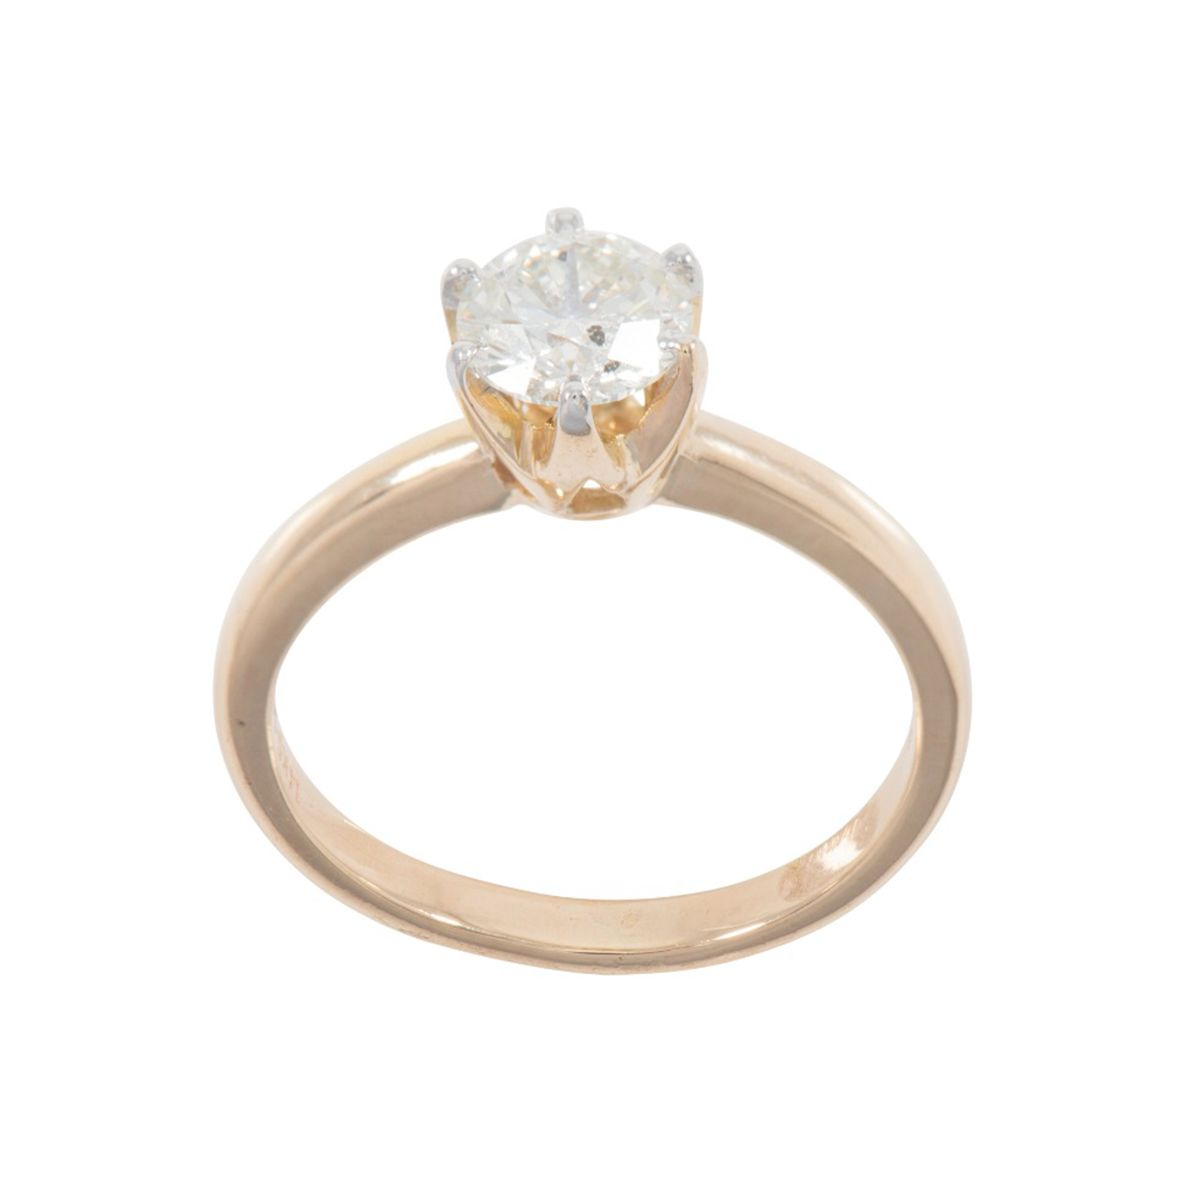 9ct Yellow Gold Ladies Round 1ct Diamond Solitaire Ring Size O